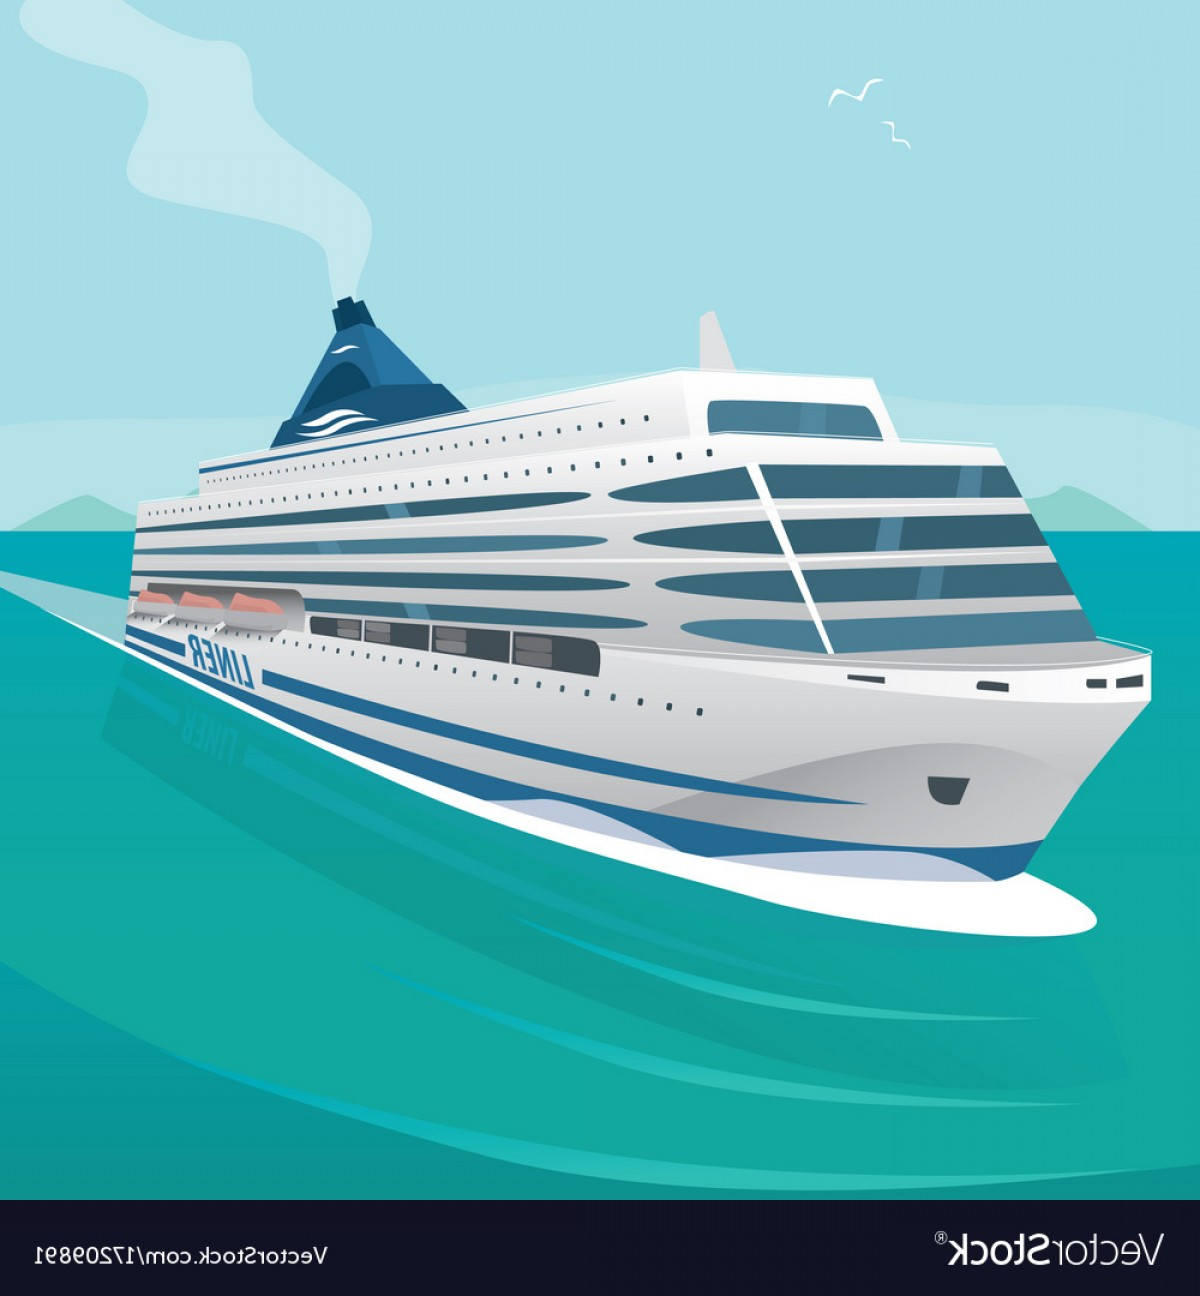 Waves With Cruise Ship Silhouette Vector: Cruise Liner Cuts Through The Waves In Open Sea Vector